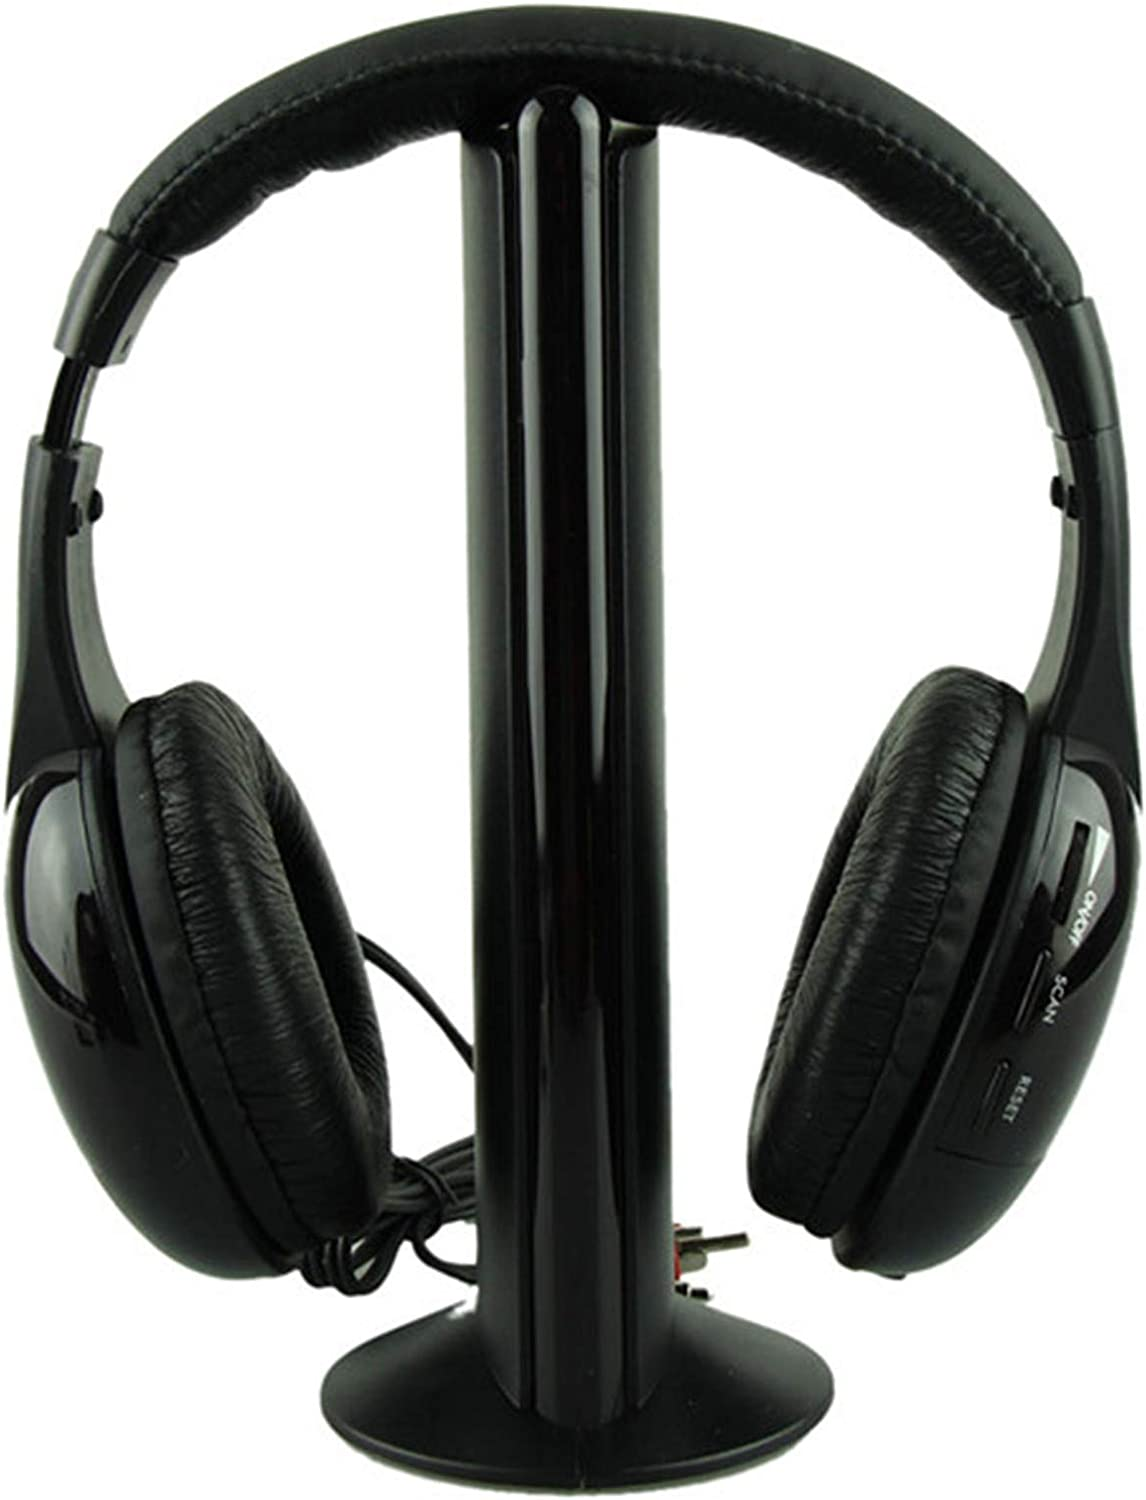 Amazon.com: Creazy 5IN1 Wireless Headphone